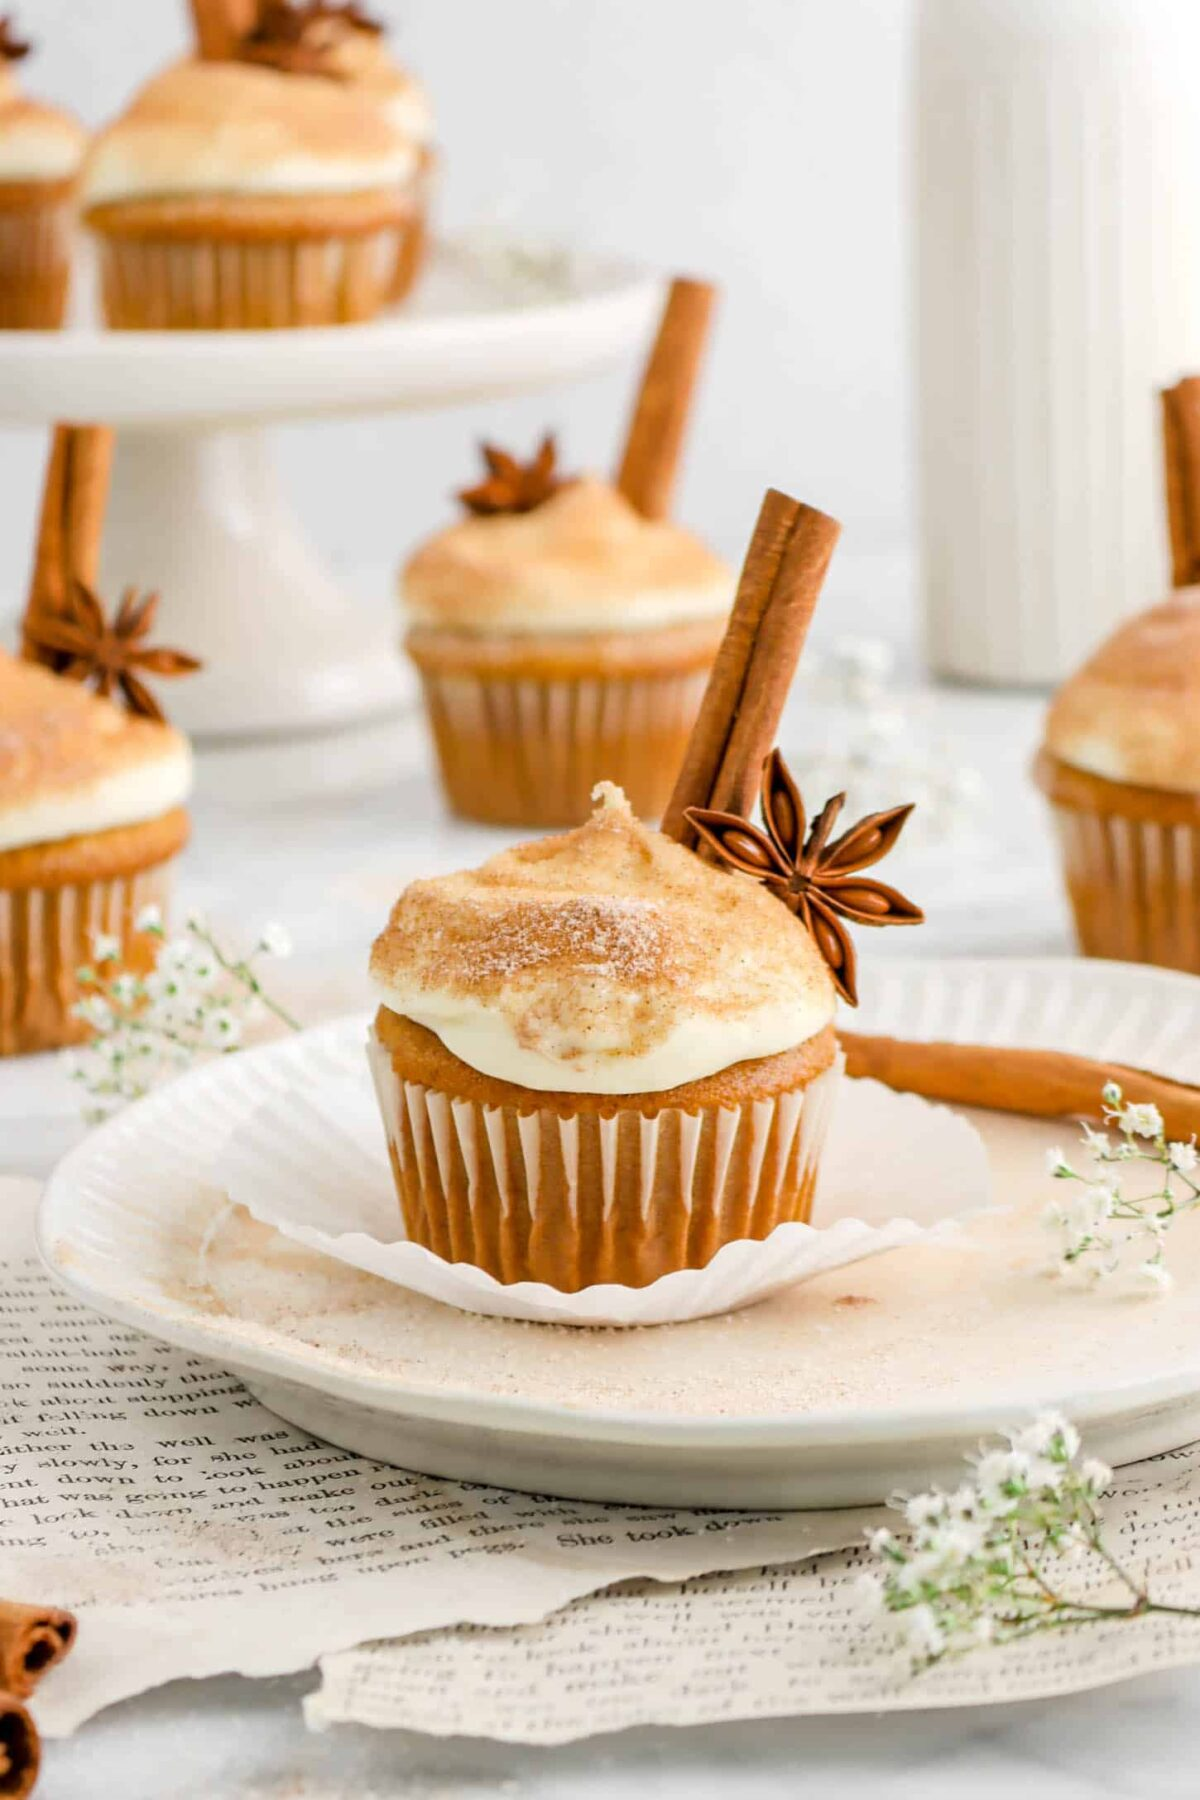 pumpkin cupcake with star anise and cinnamon stick on white plate, book pages underneath, more cupcakes behind, and flowers